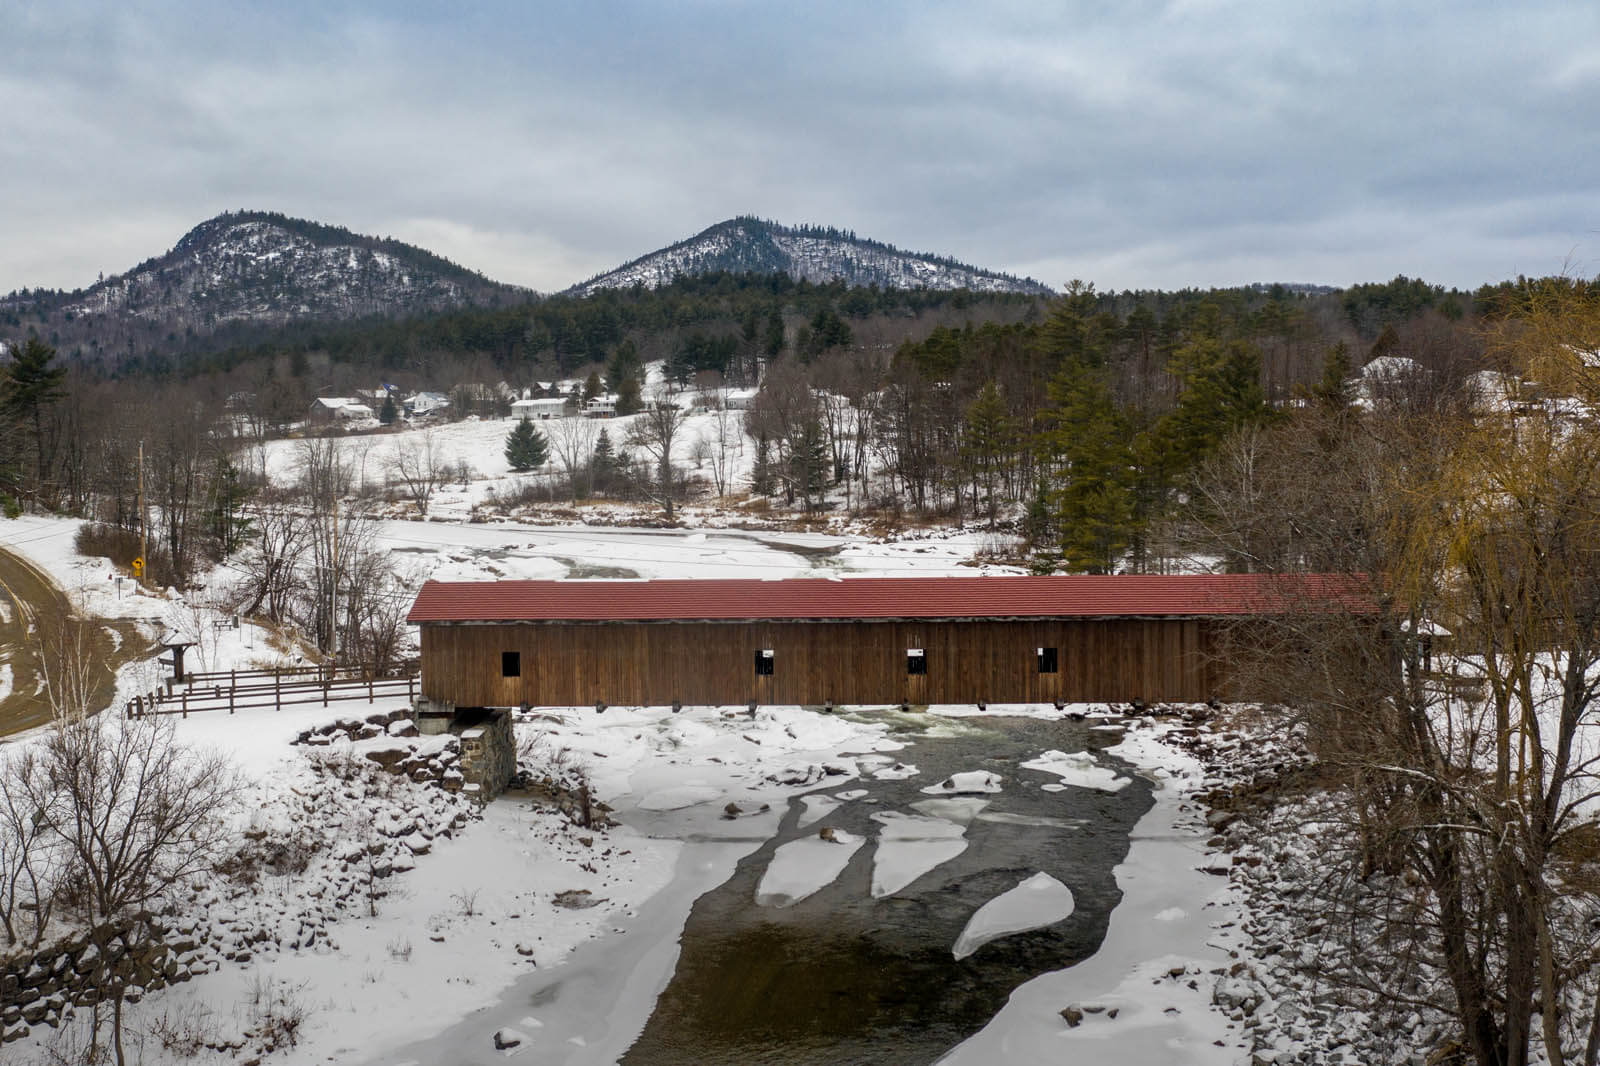 Jay Covered Bridge in Adirondacks New York